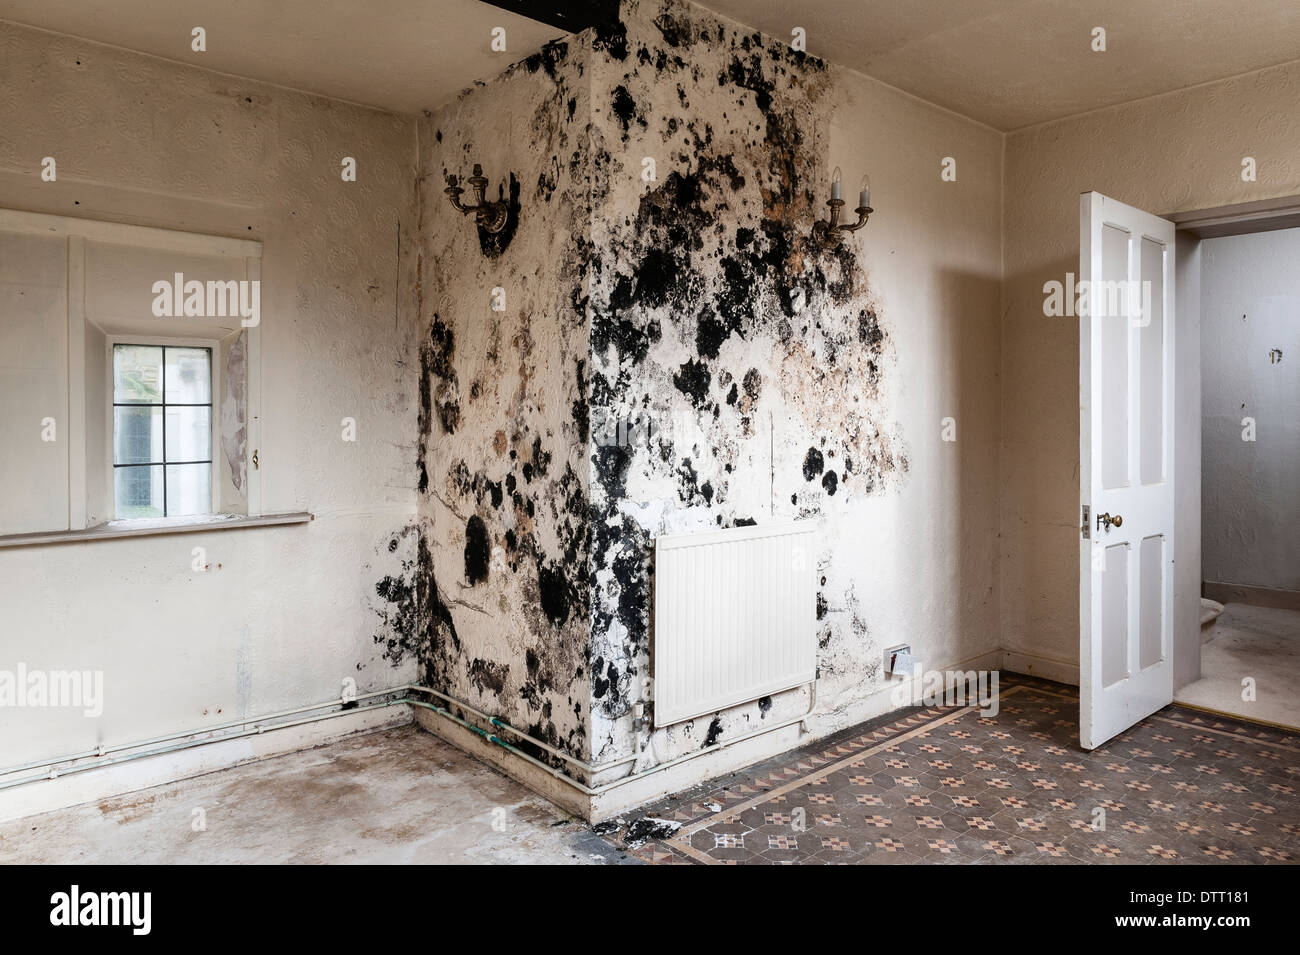 Black Mould Stachybotrys Chartarum In An Empty House Uk A Health Stock Photo 66910705 Alamy